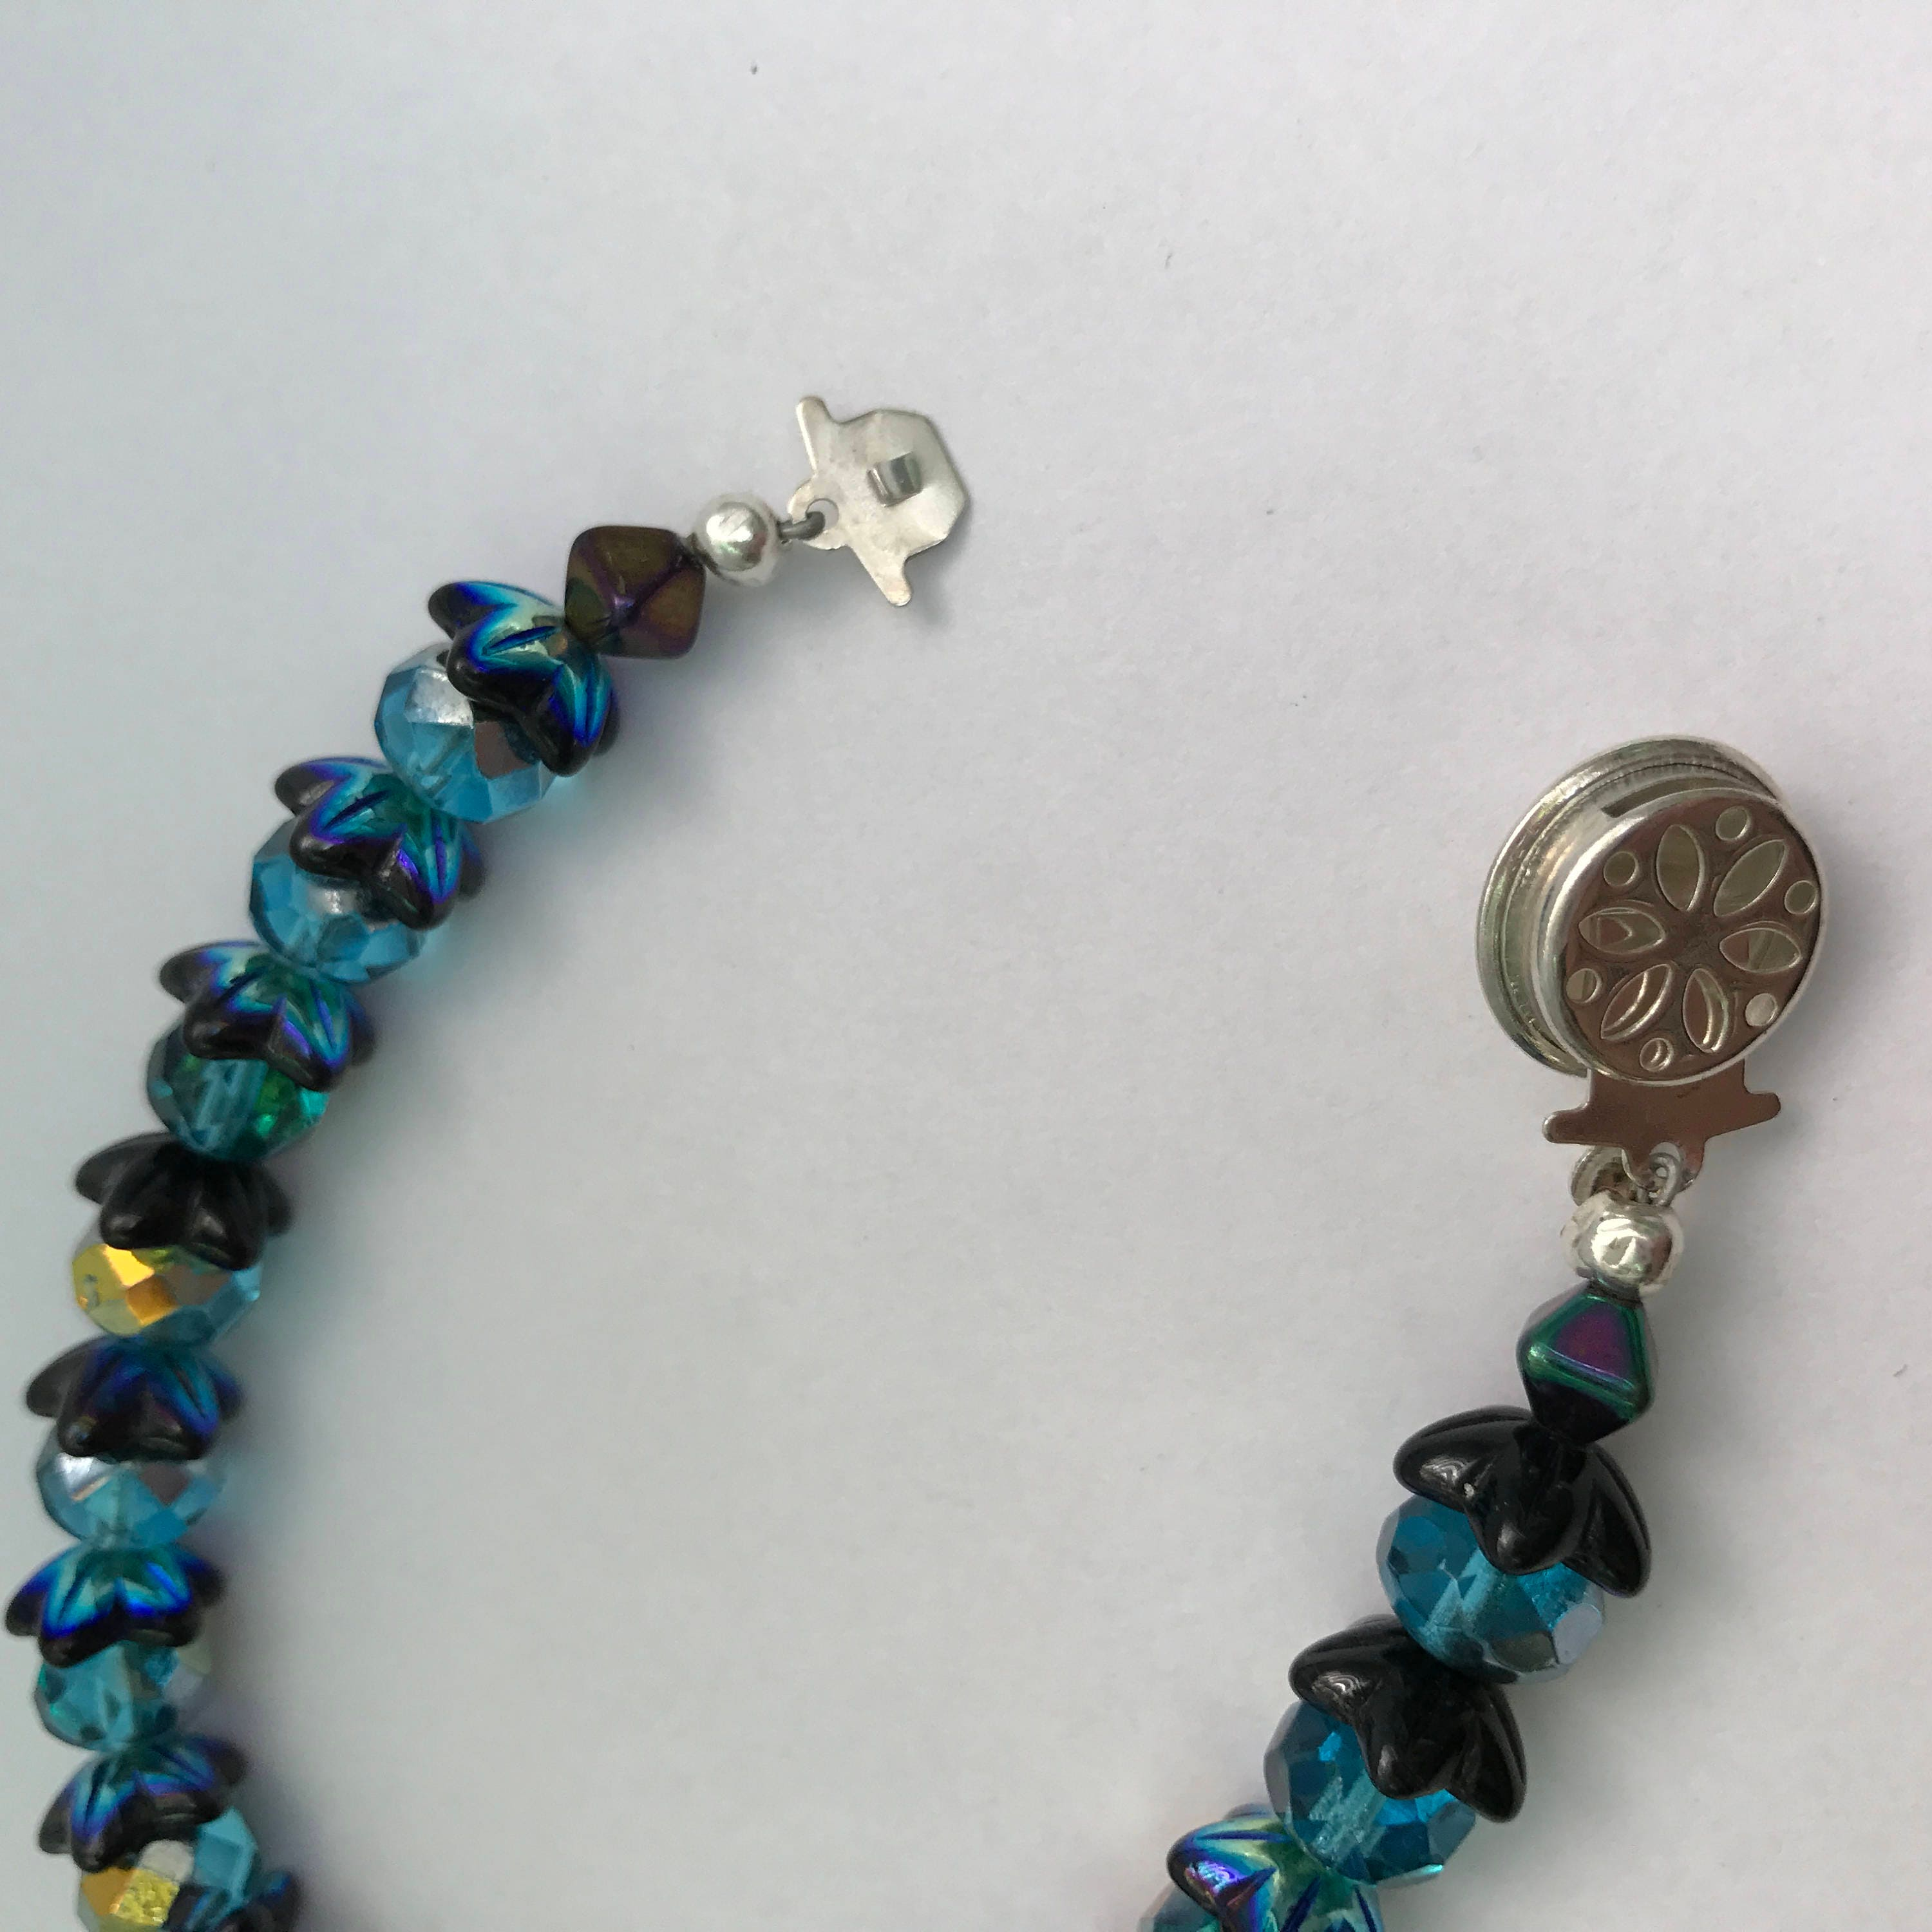 Mermaid bracelets for Mom and Child Matching Jewelry Beaded